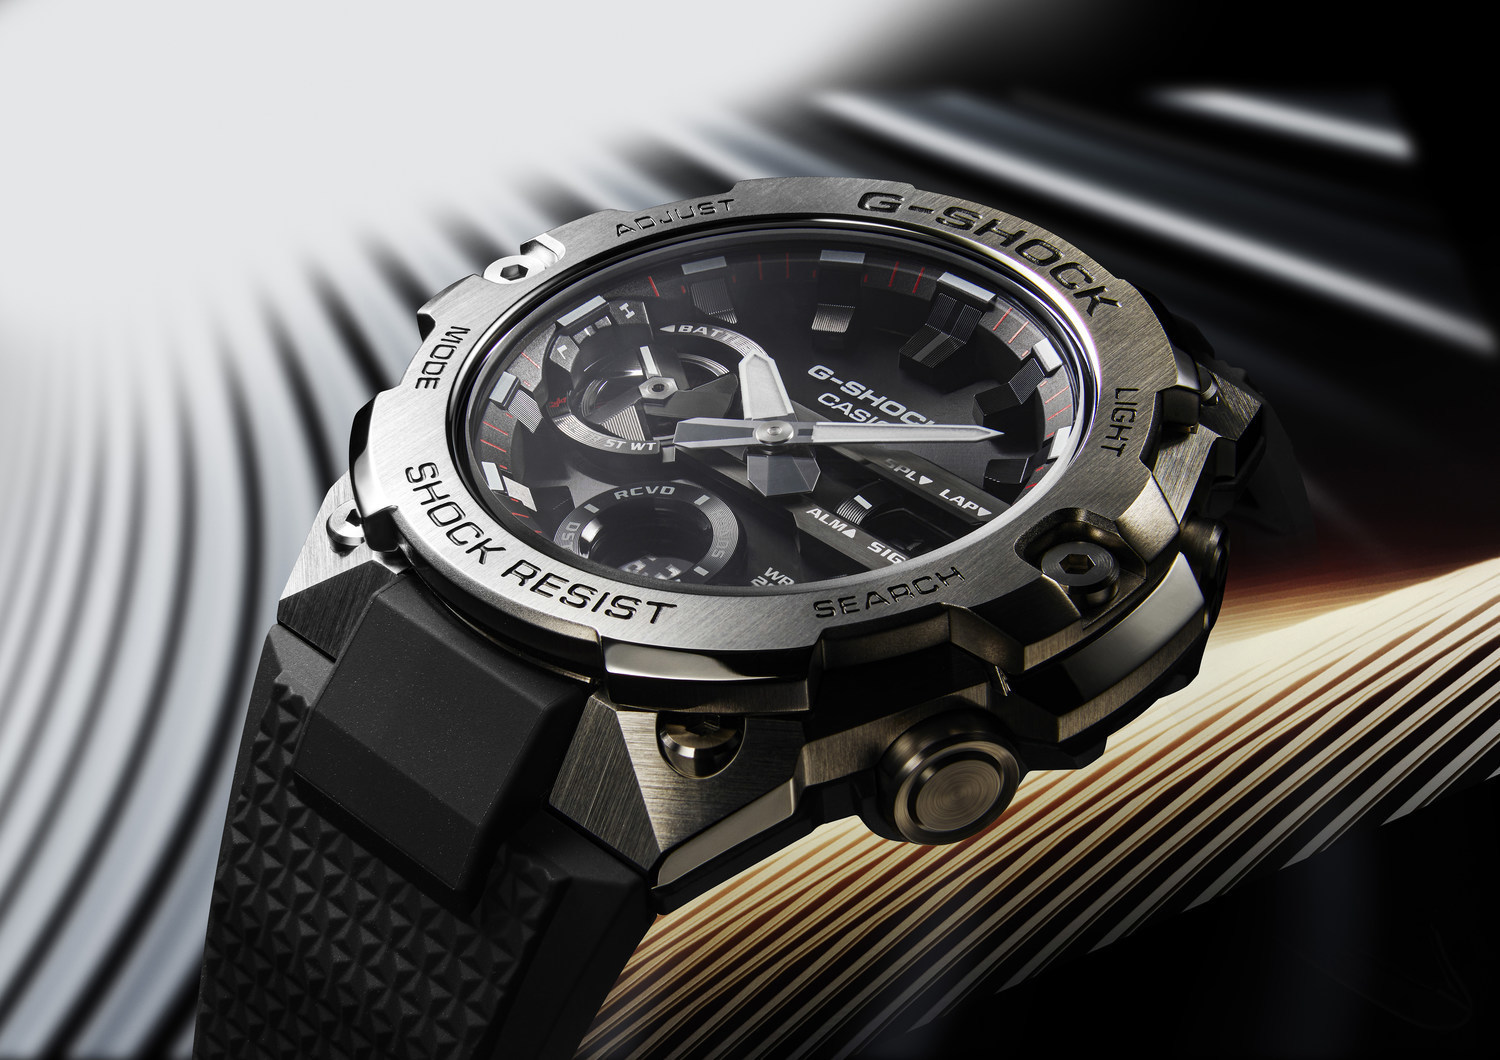 Four new slim Casio steel watches released